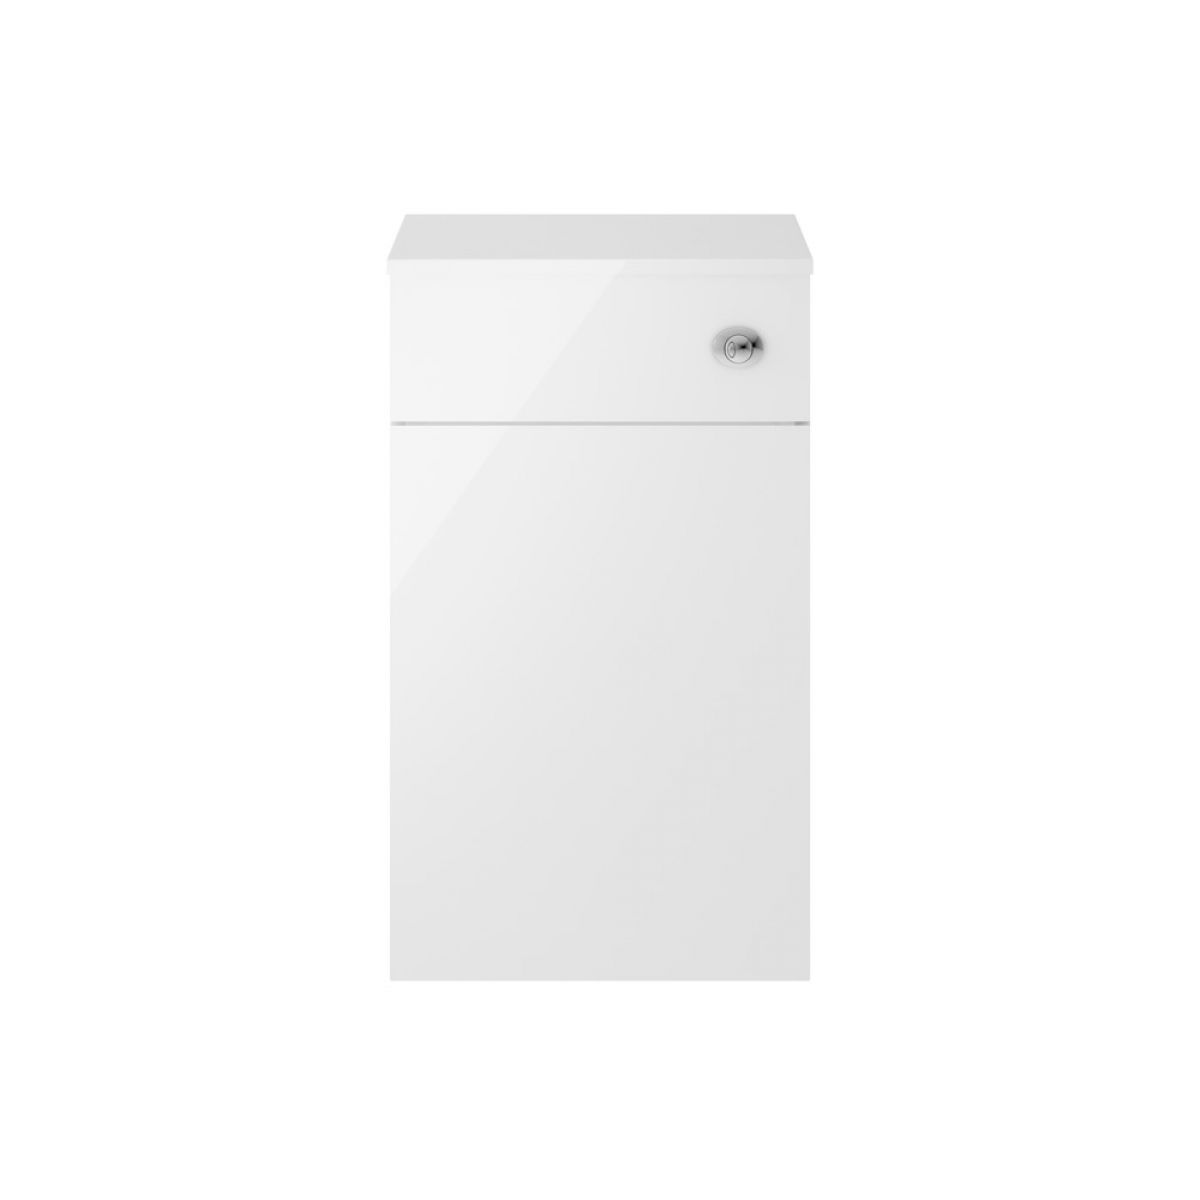 Premier Athena Gloss White Toilet Vanity Unit 500mm